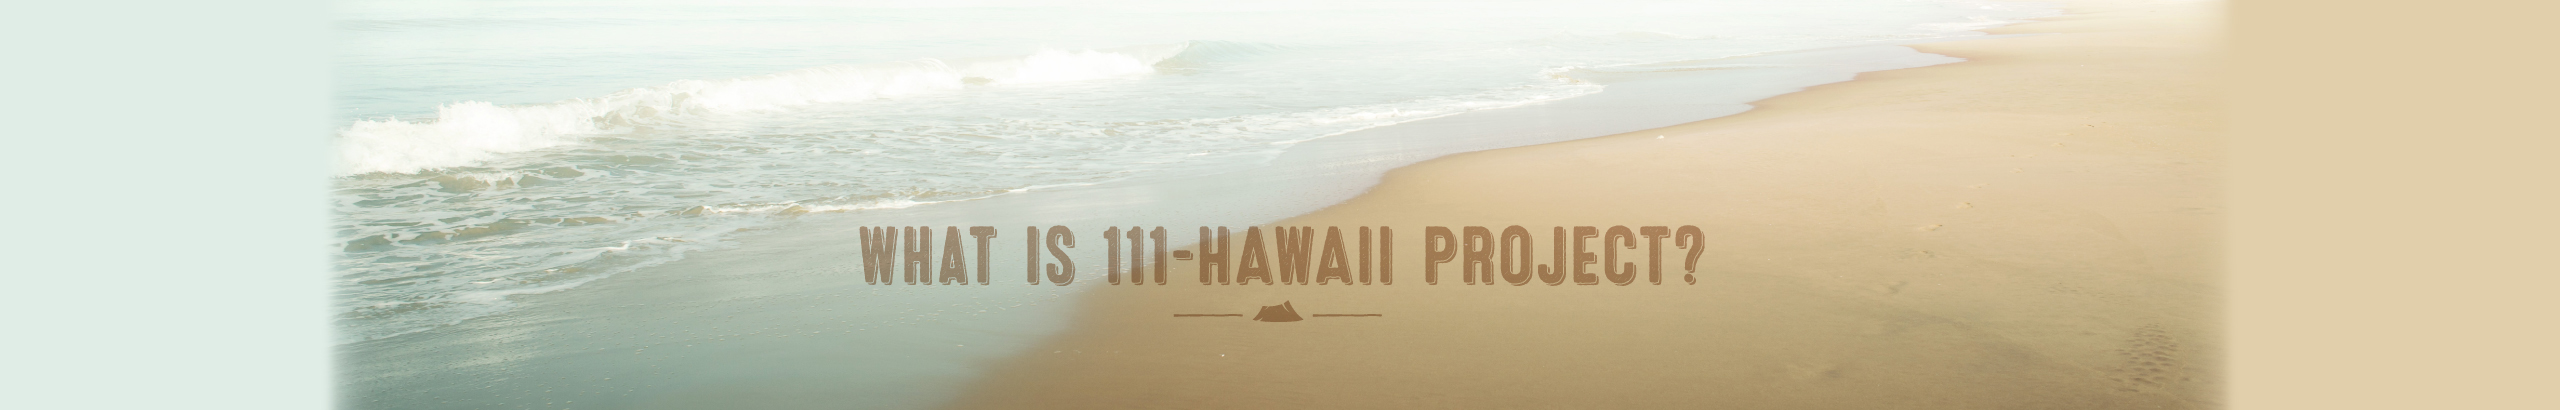 What is 111-Hawaii Project? Branding made in Hawaii products